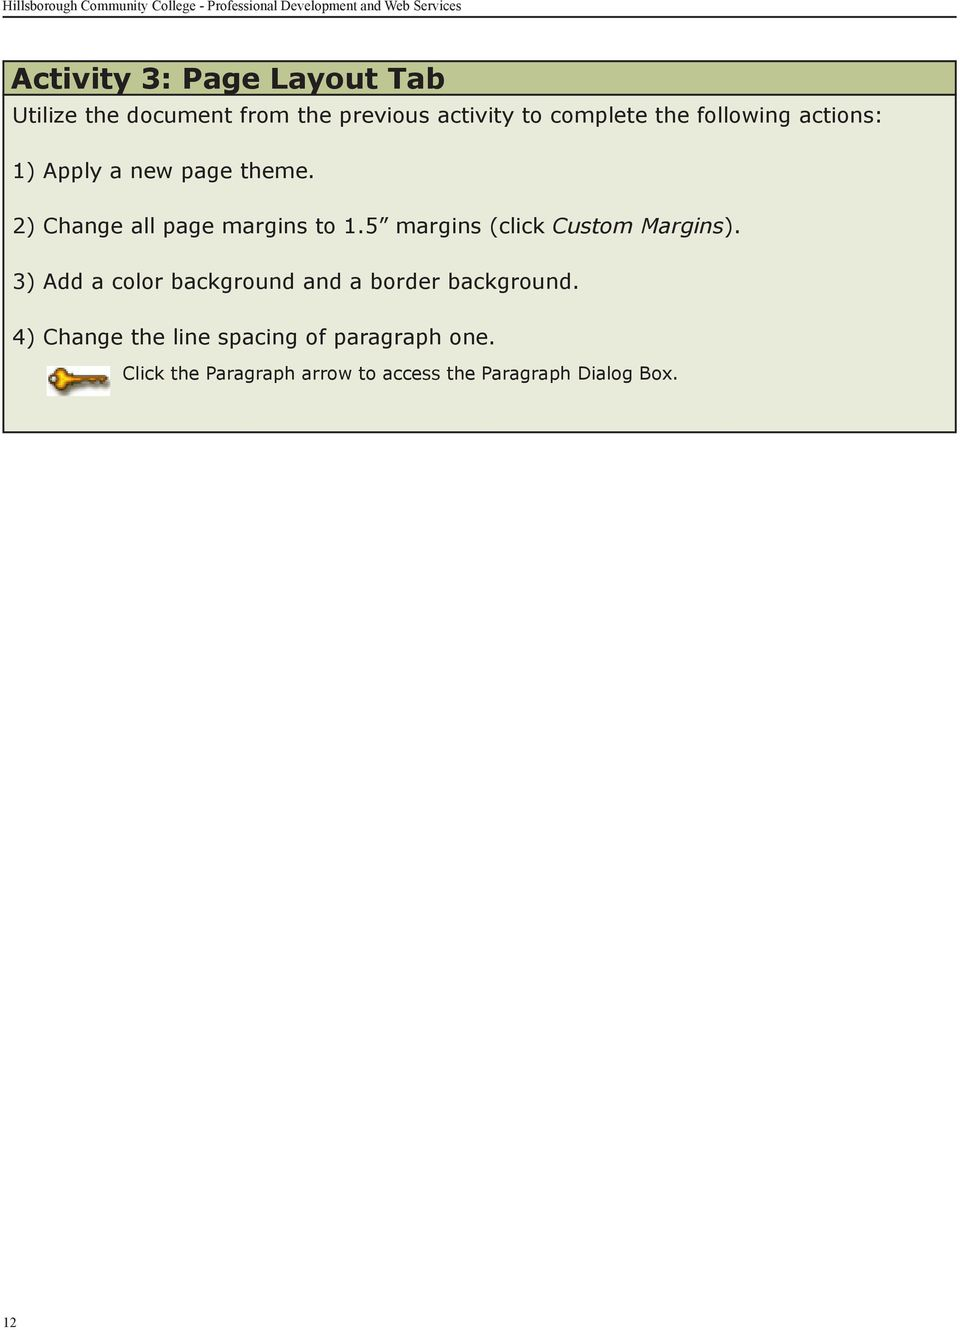 2) Change all page margins to 1.5 margins (click Custom Margins).